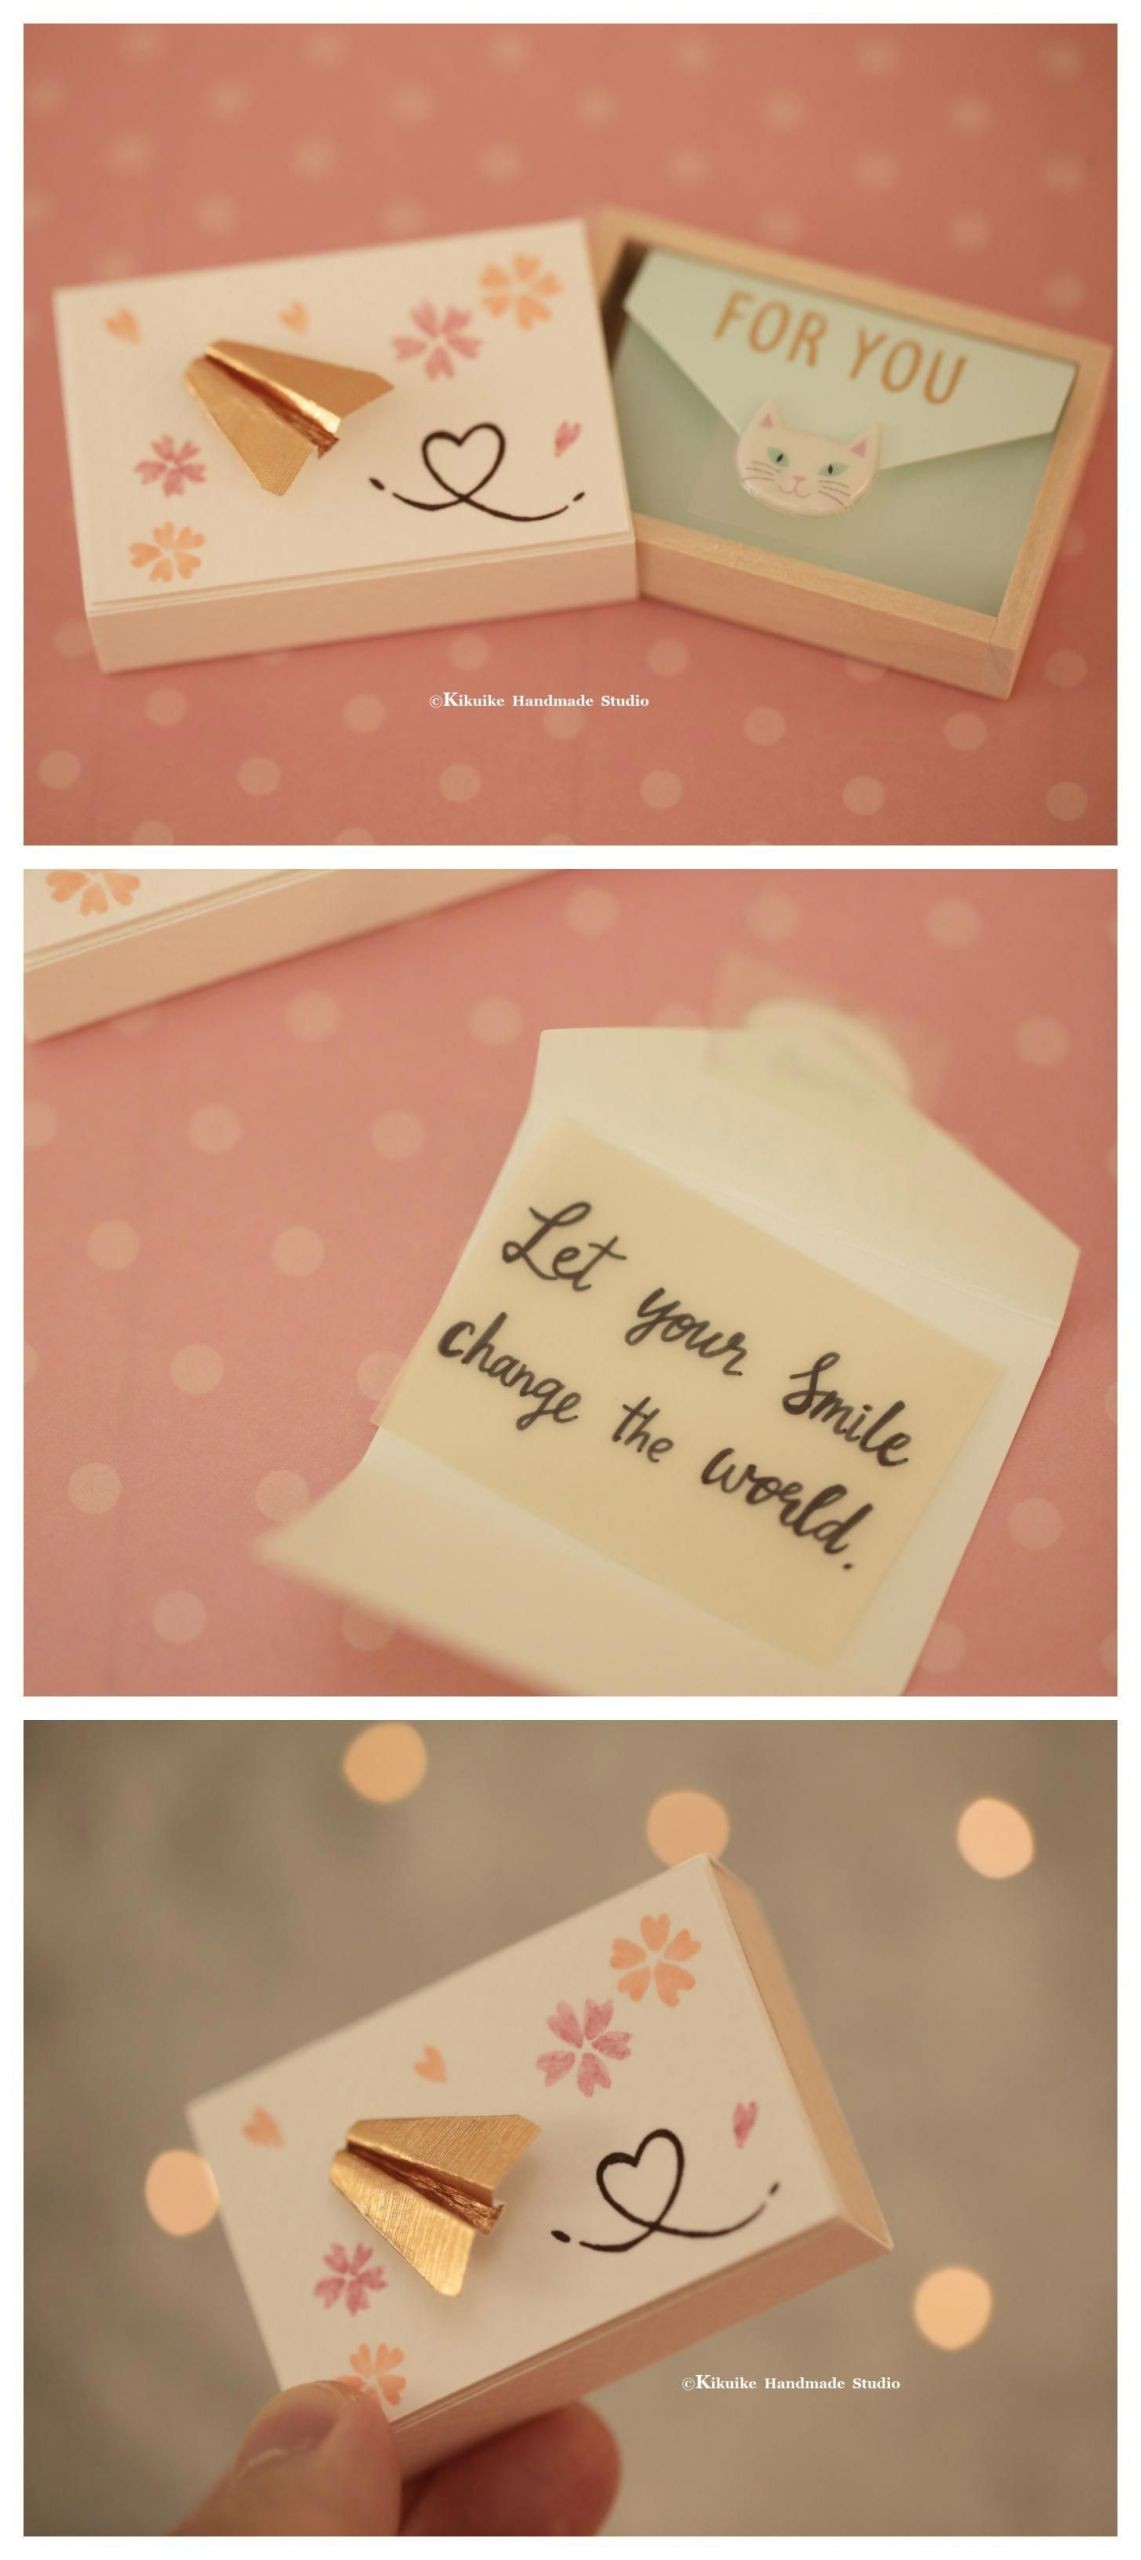 Handmade Card Ideas for Boyfriend Surprise Gifts for Him with Images Funny Love Cards